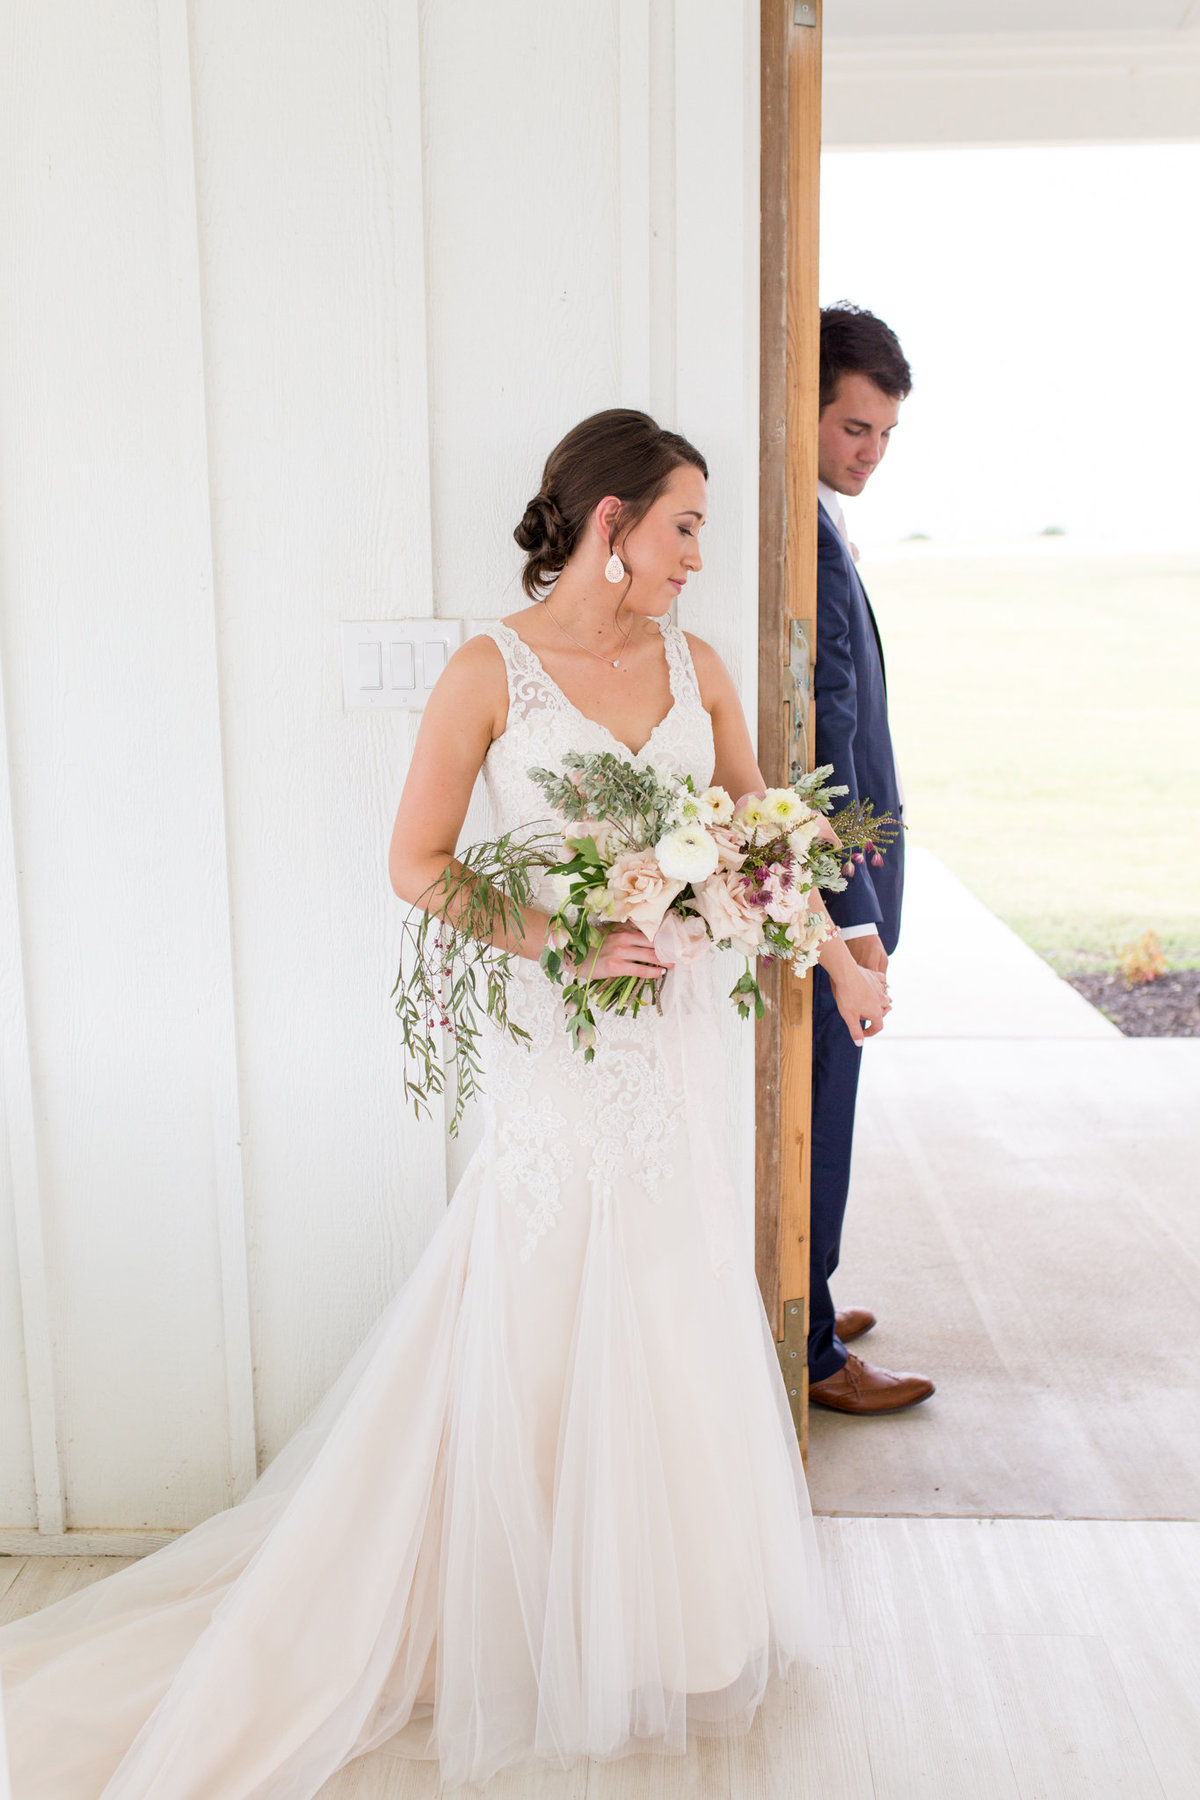 Grand Ivory Wedding| Dallas, Texas | DFW Wedding Photographer | Sami Kathryn Photography-52